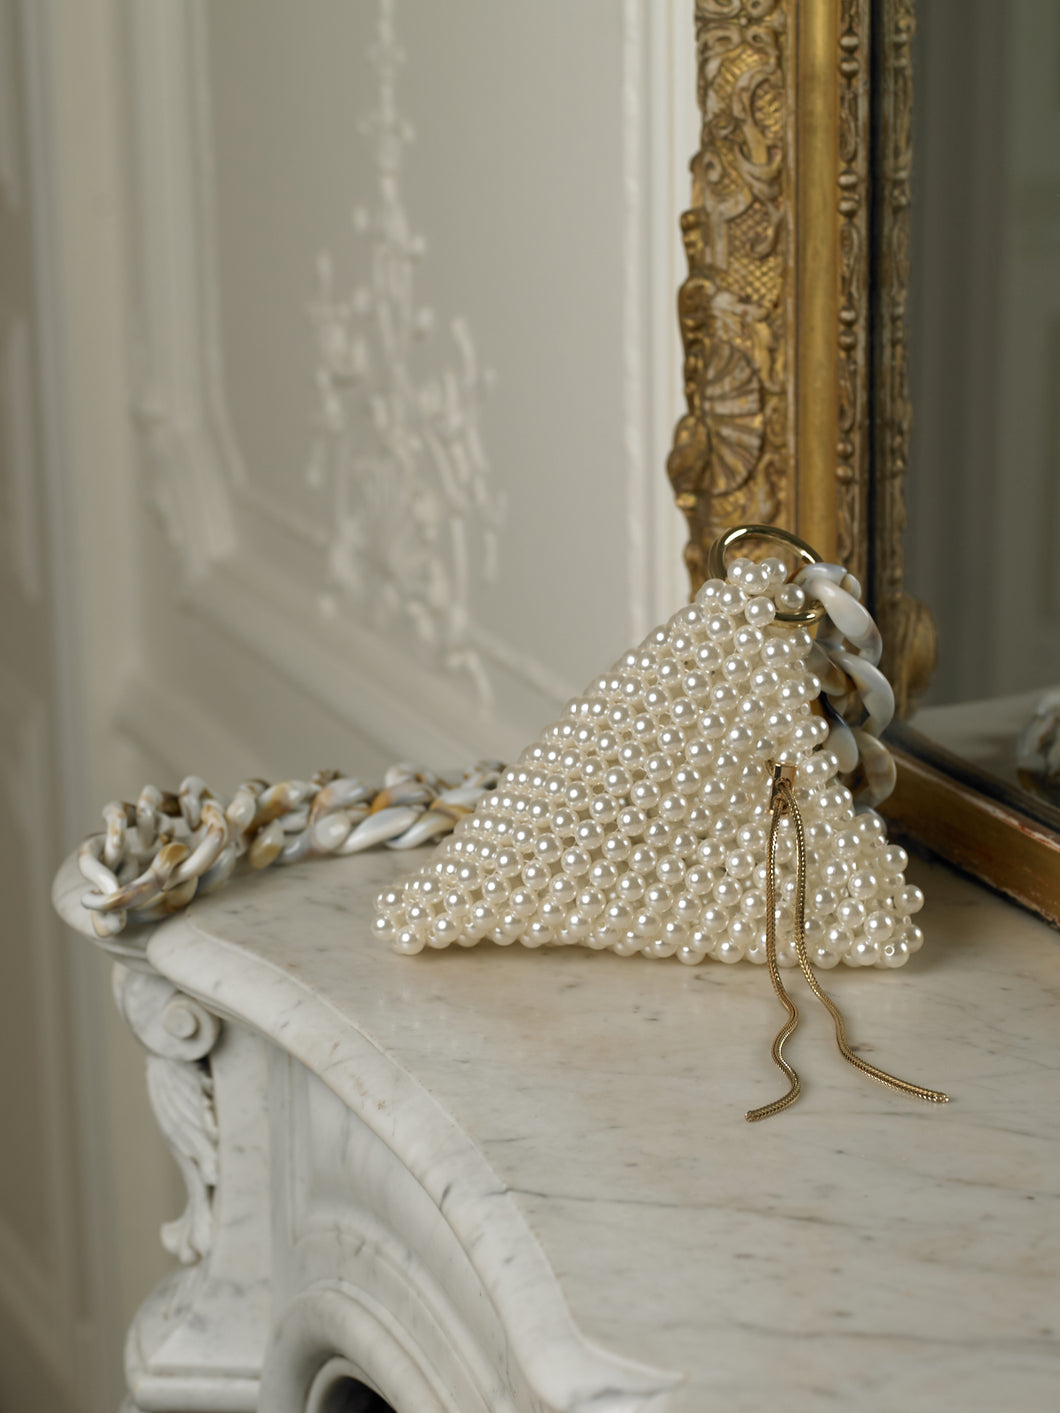 Artisanal Triangular Eruma Pearl Bag - Pearl/Gold